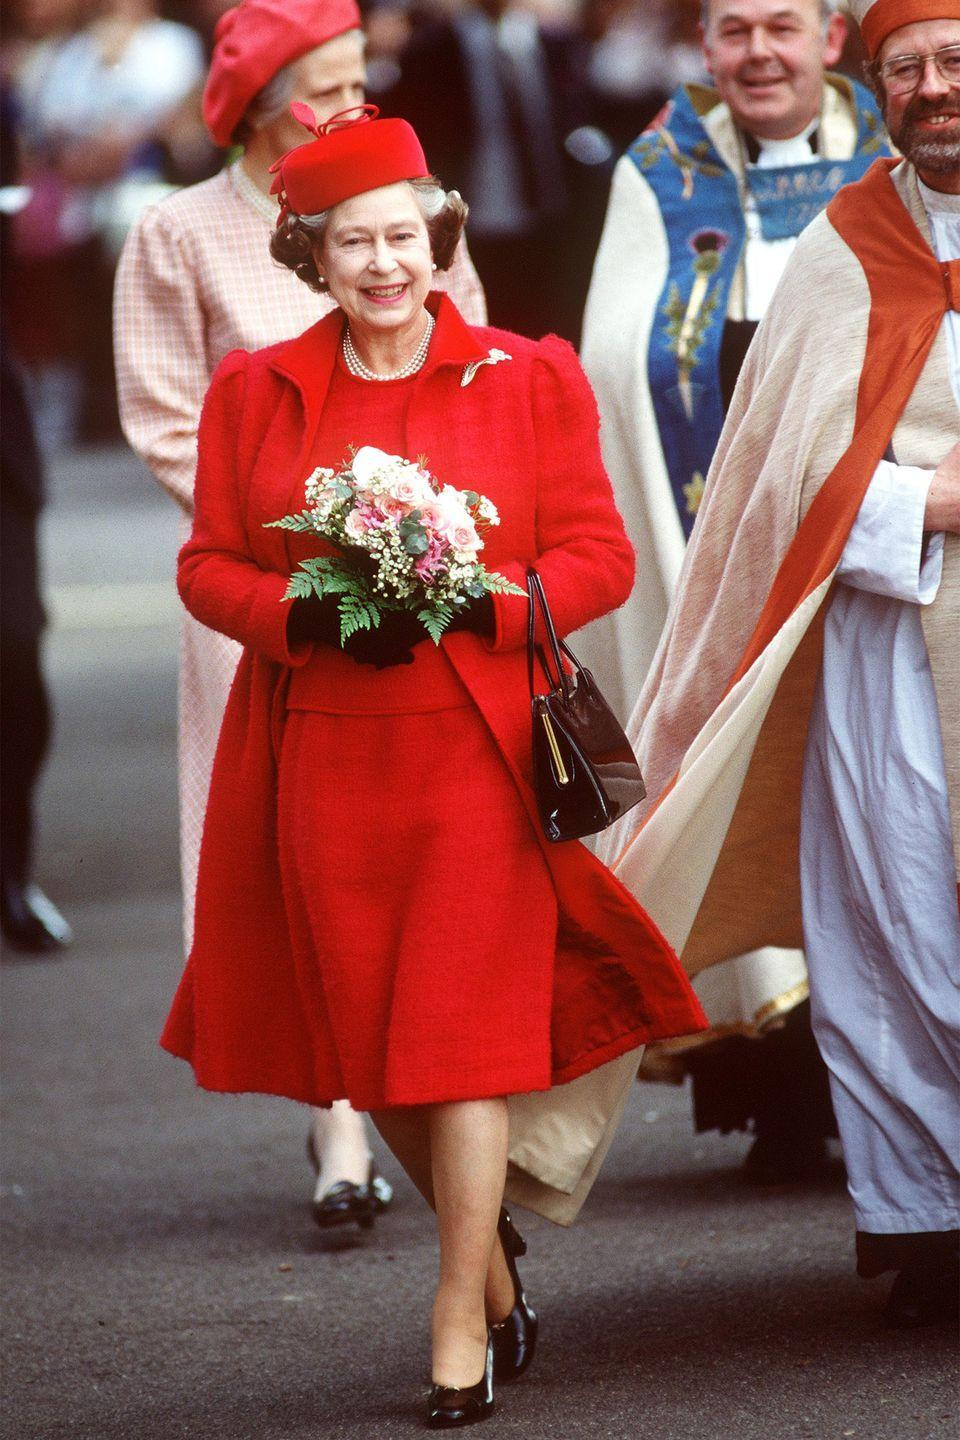 <p>She sports a red dress, coat, and matching pillbox hat for a visit to Saint Anne's Church.</p>